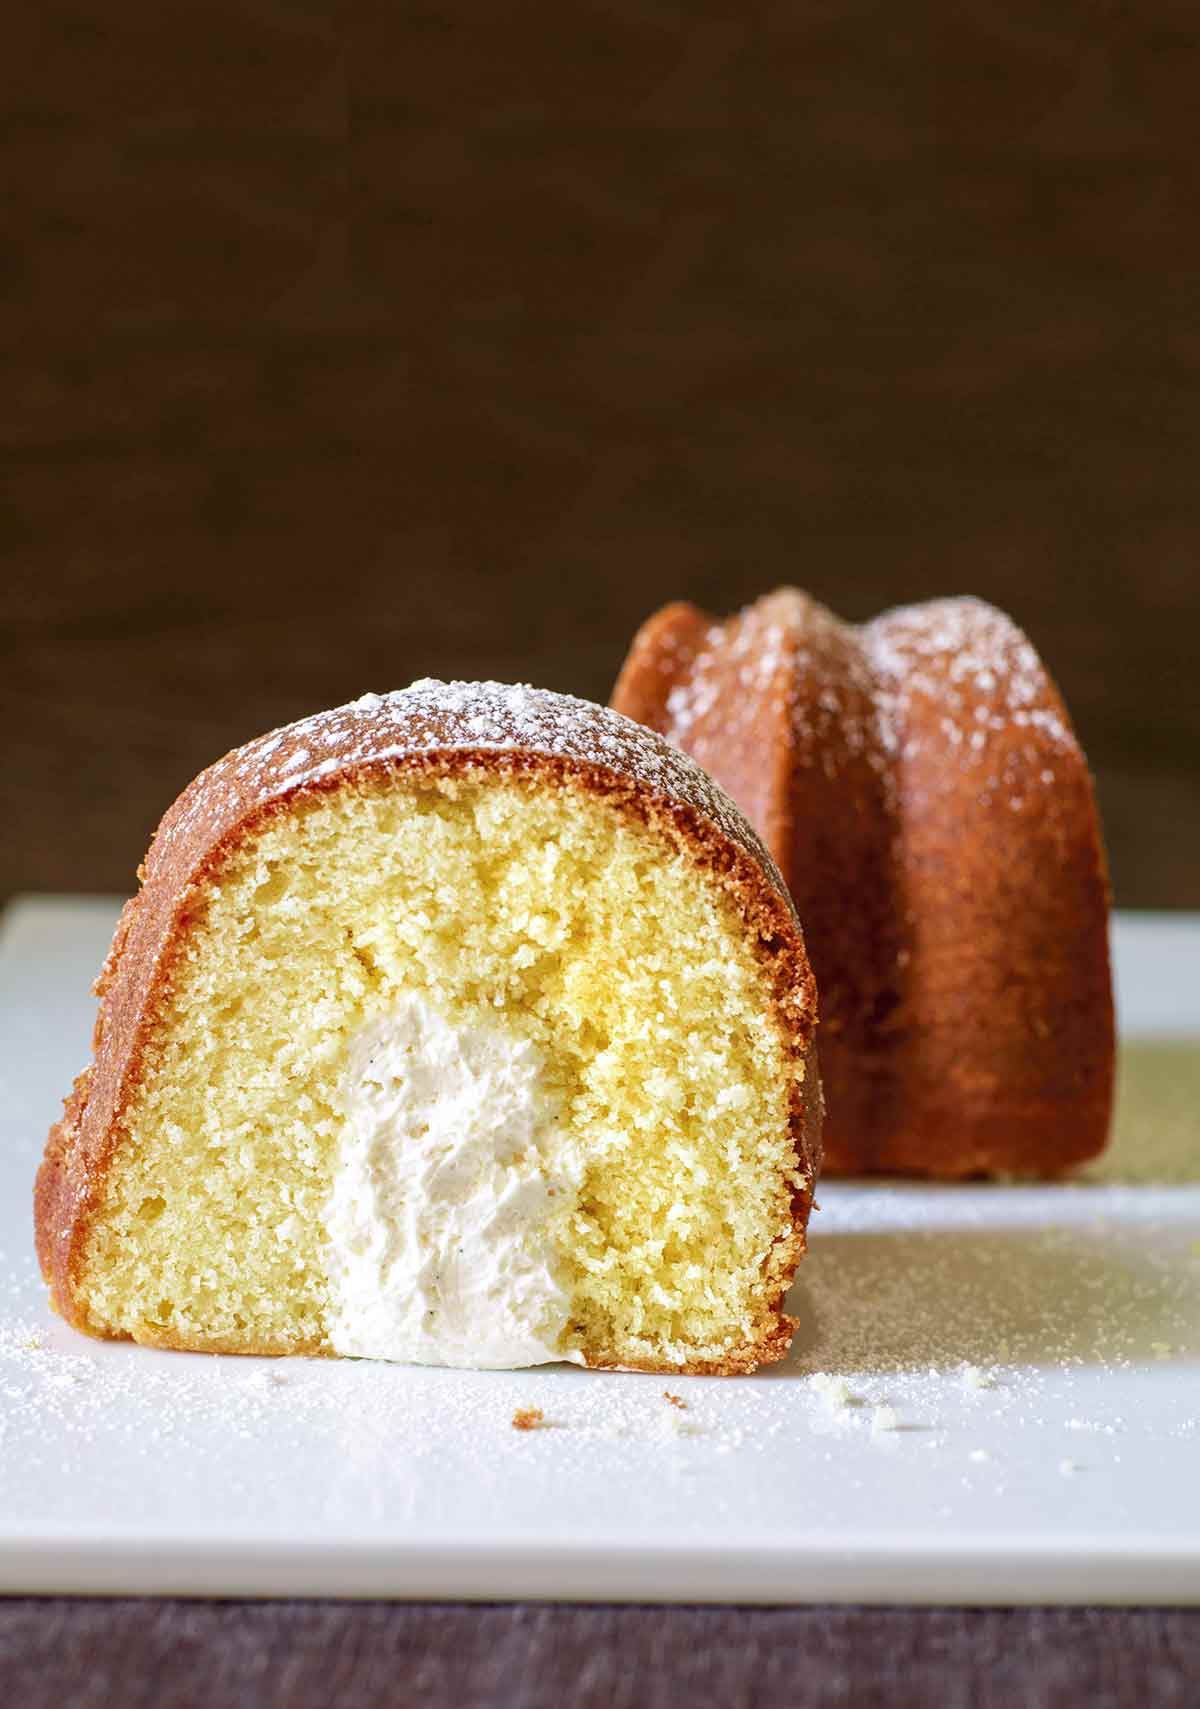 A slice of twinkie bundt cake dusted with confectioners' sugar and turned to show the cross section.